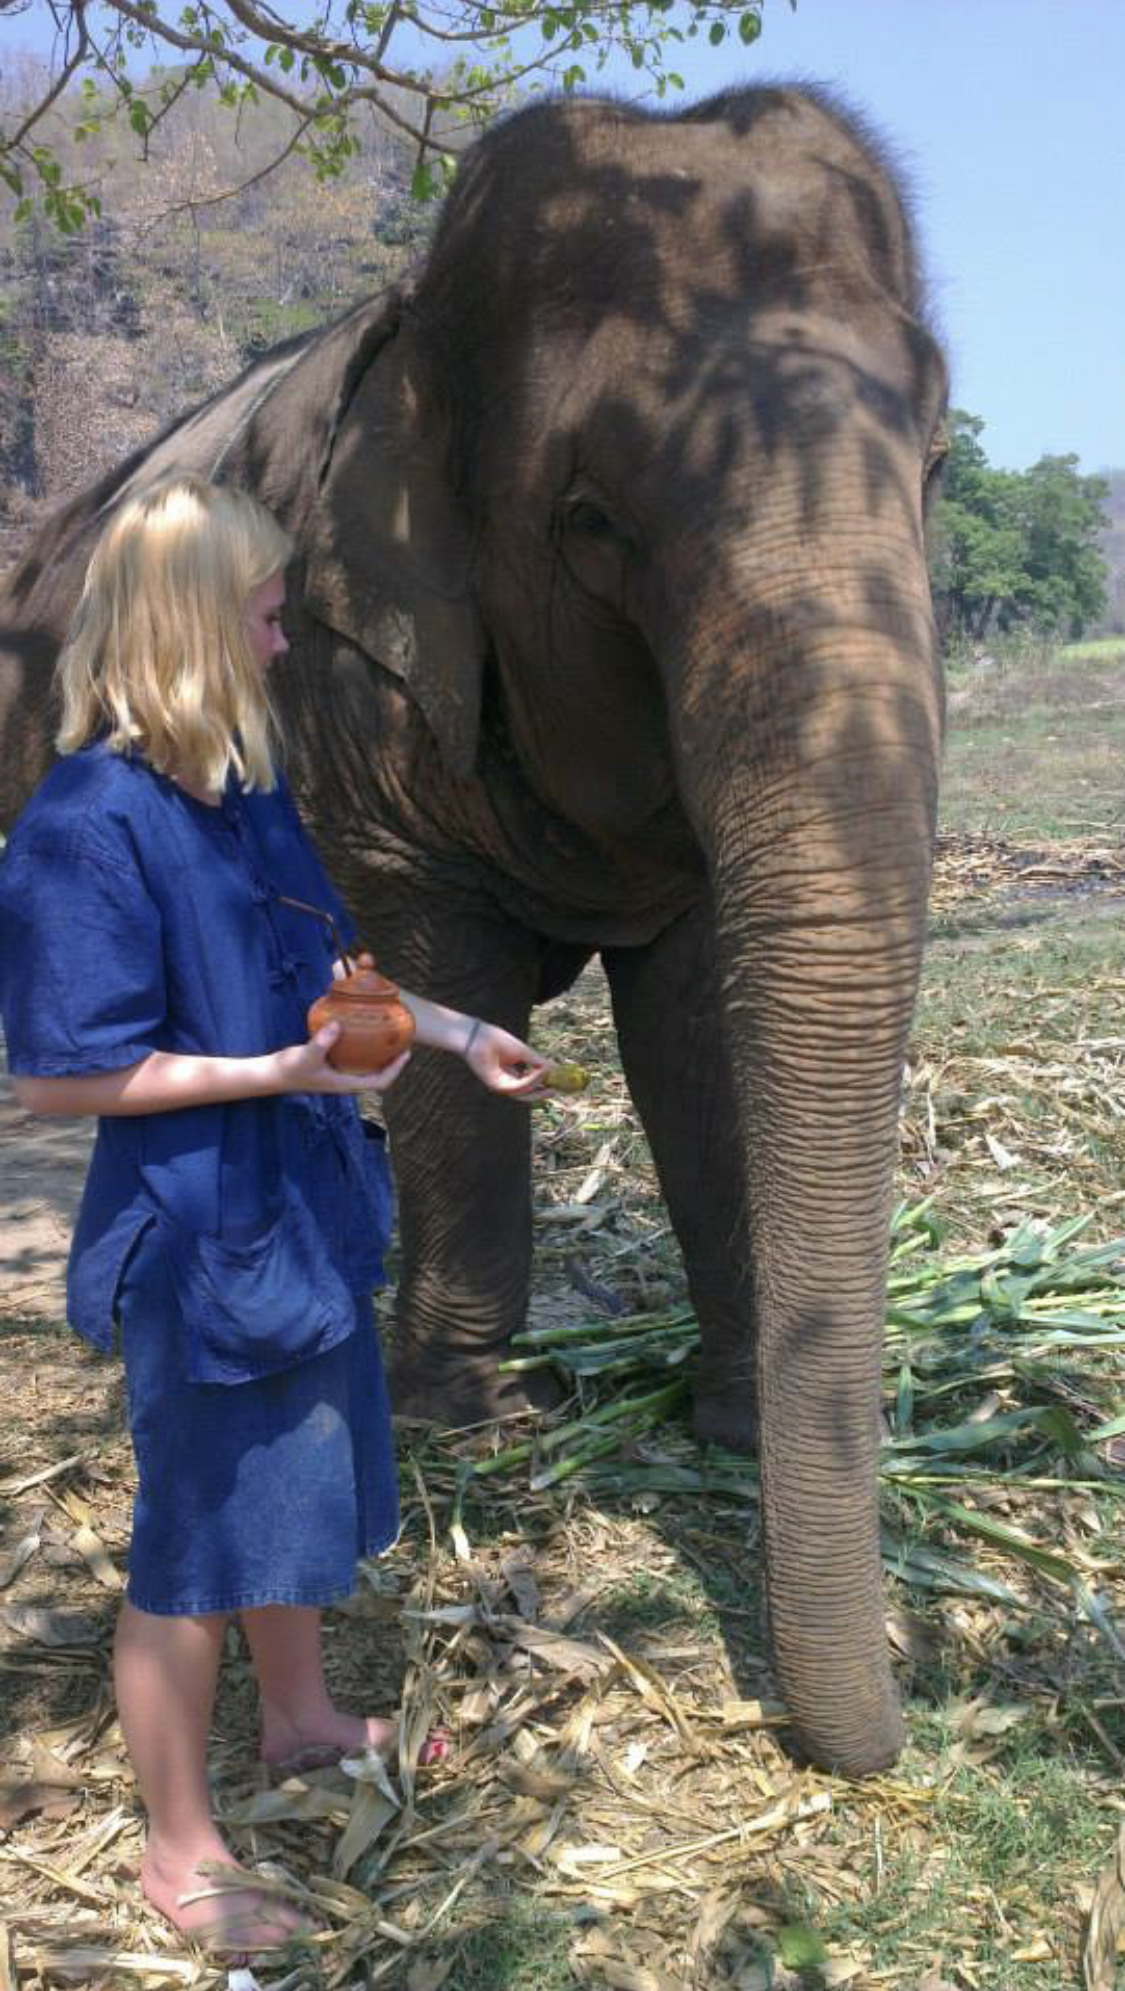 Feeding an elephant in Chiang Mai Thailand on a Care giving Experience